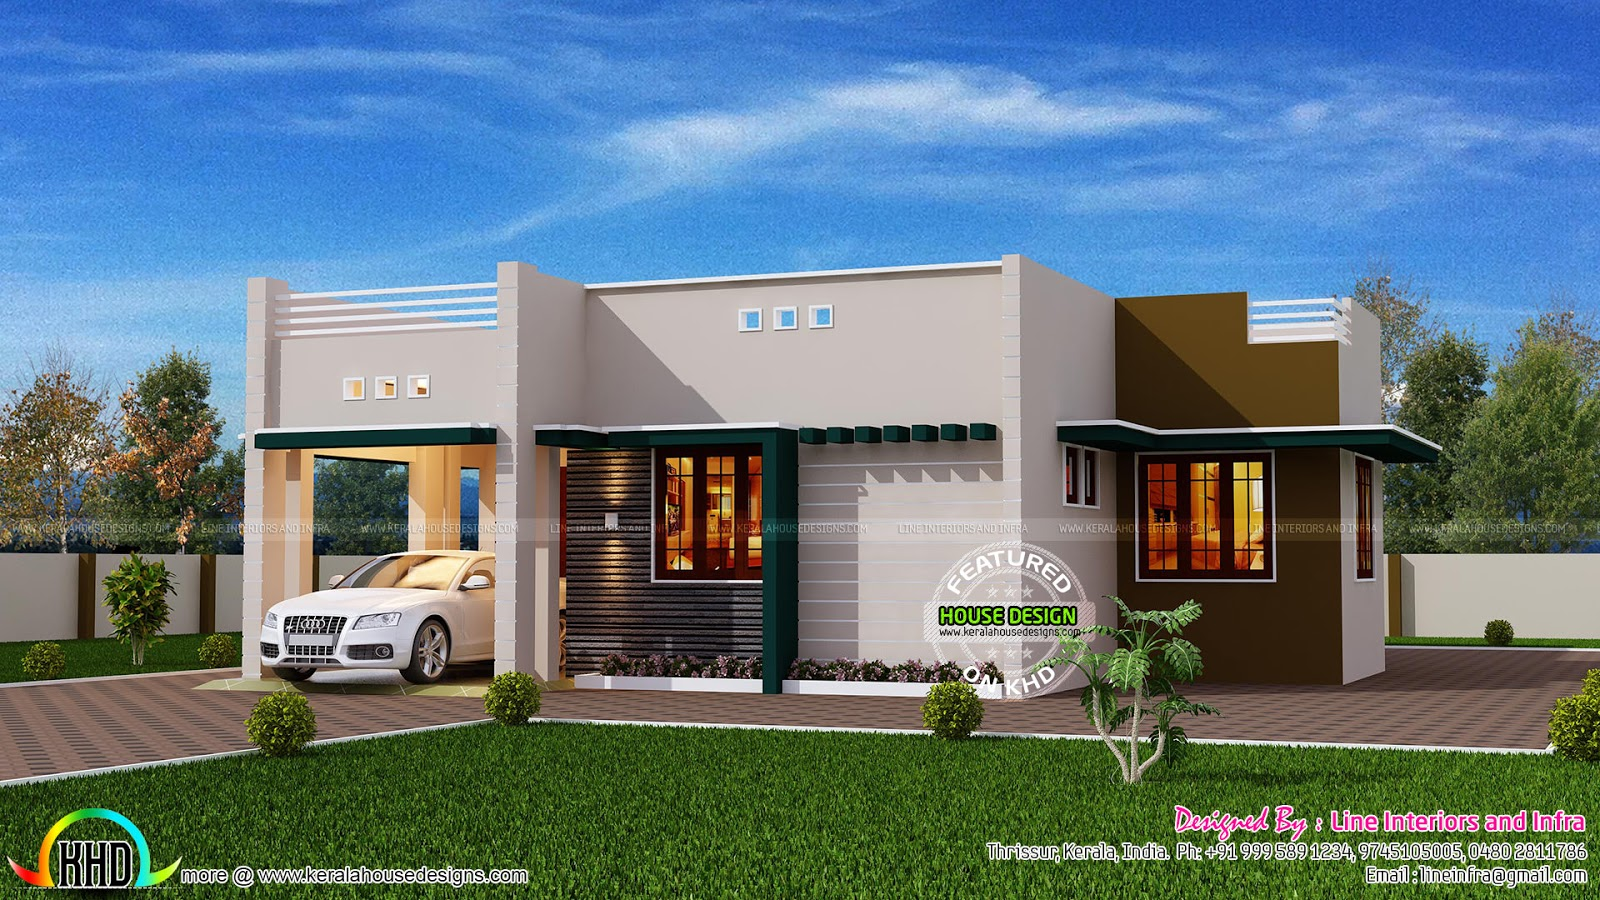 1500 square foot house kerala home design and floor plans for 1500 square foot house